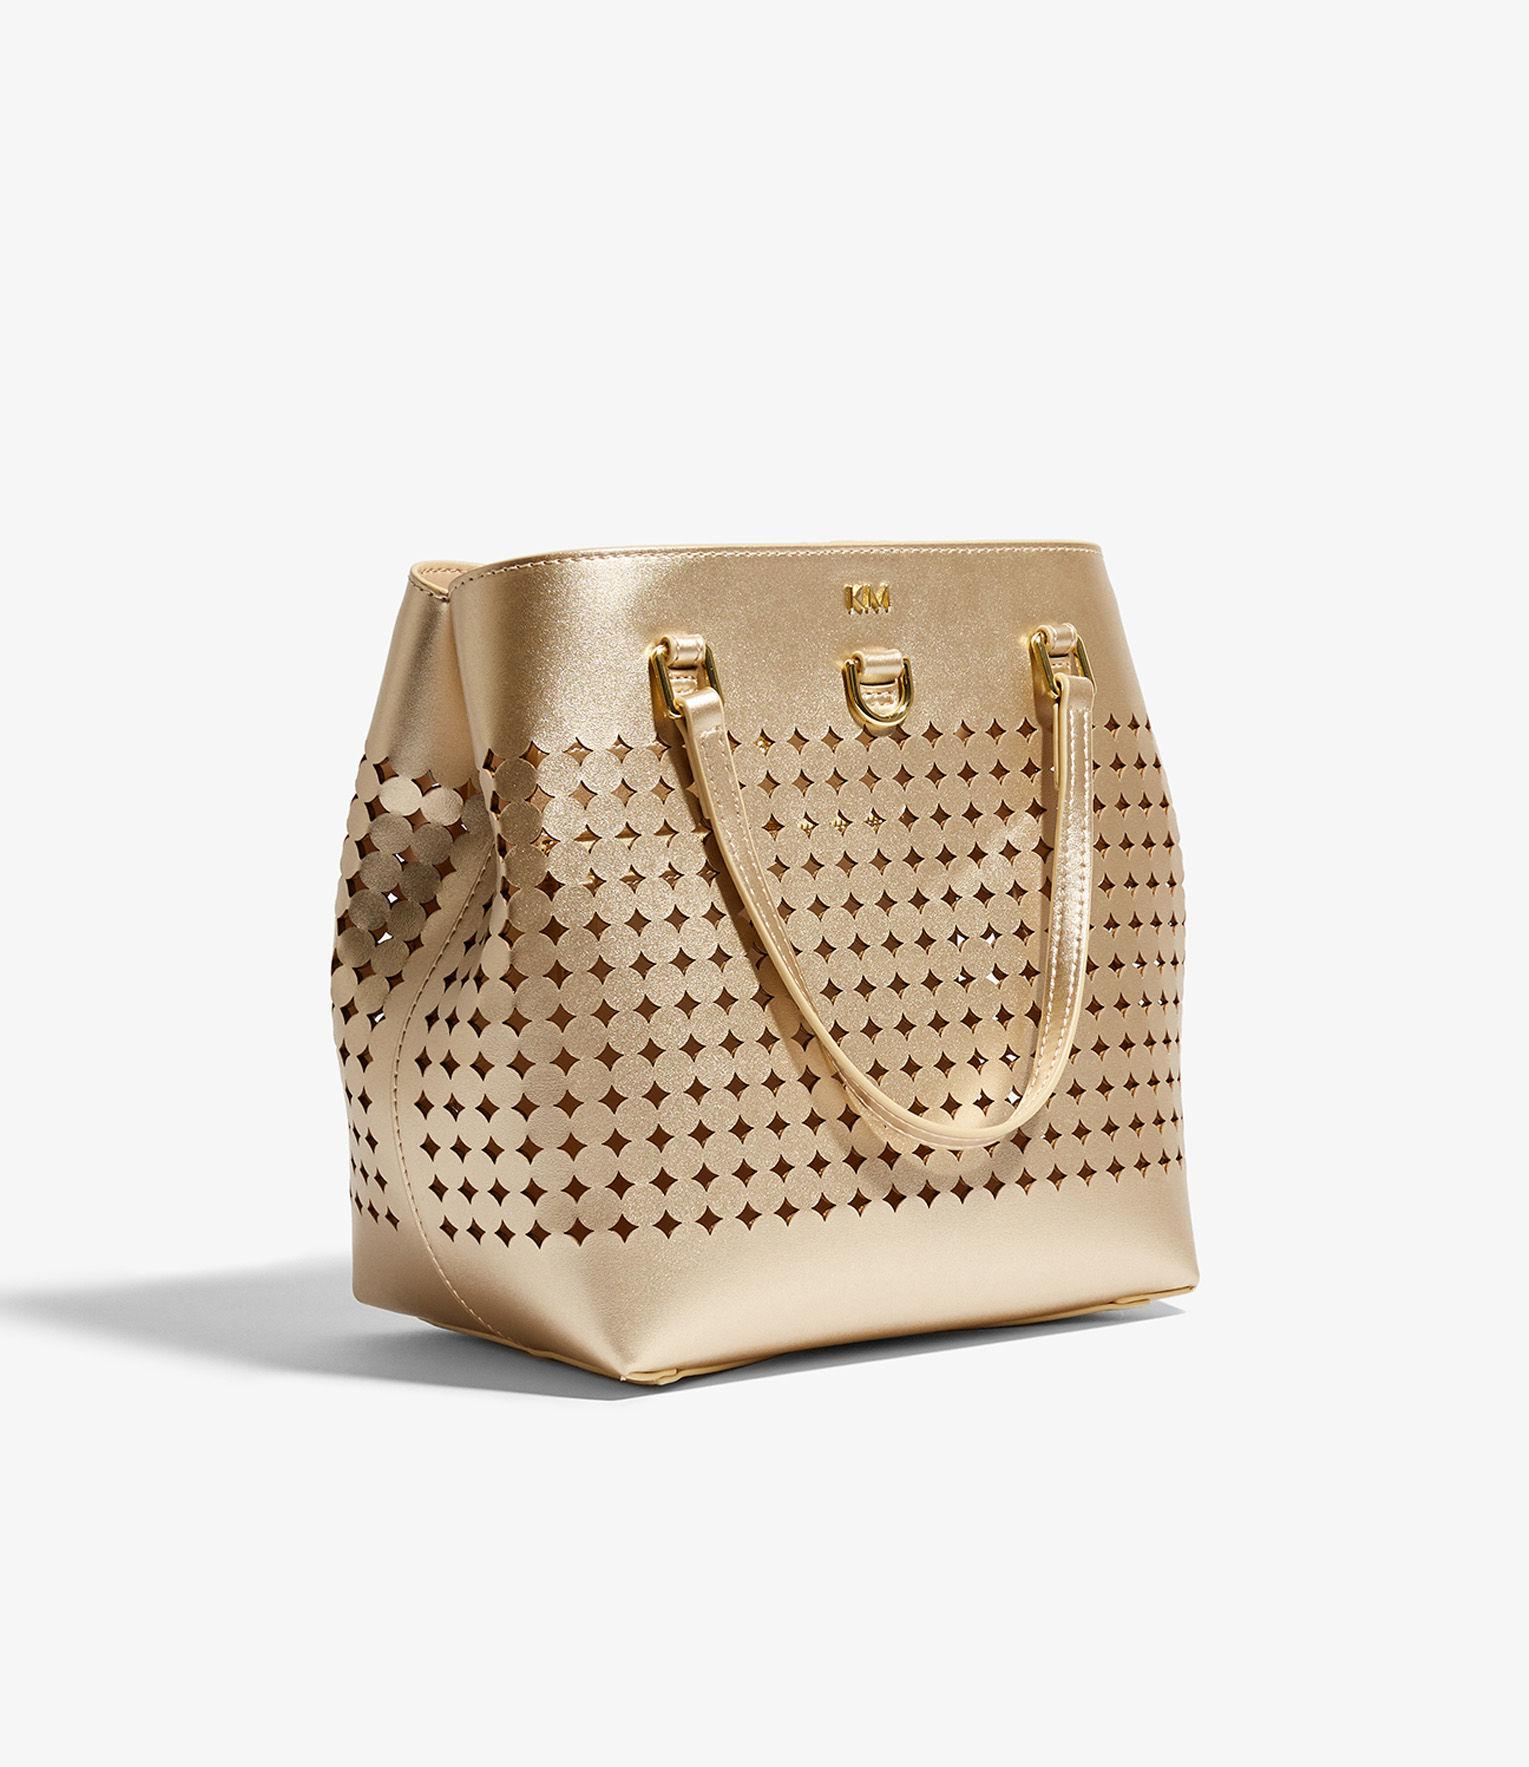 Karen Millen Leather Perforated Mini Tote Bag